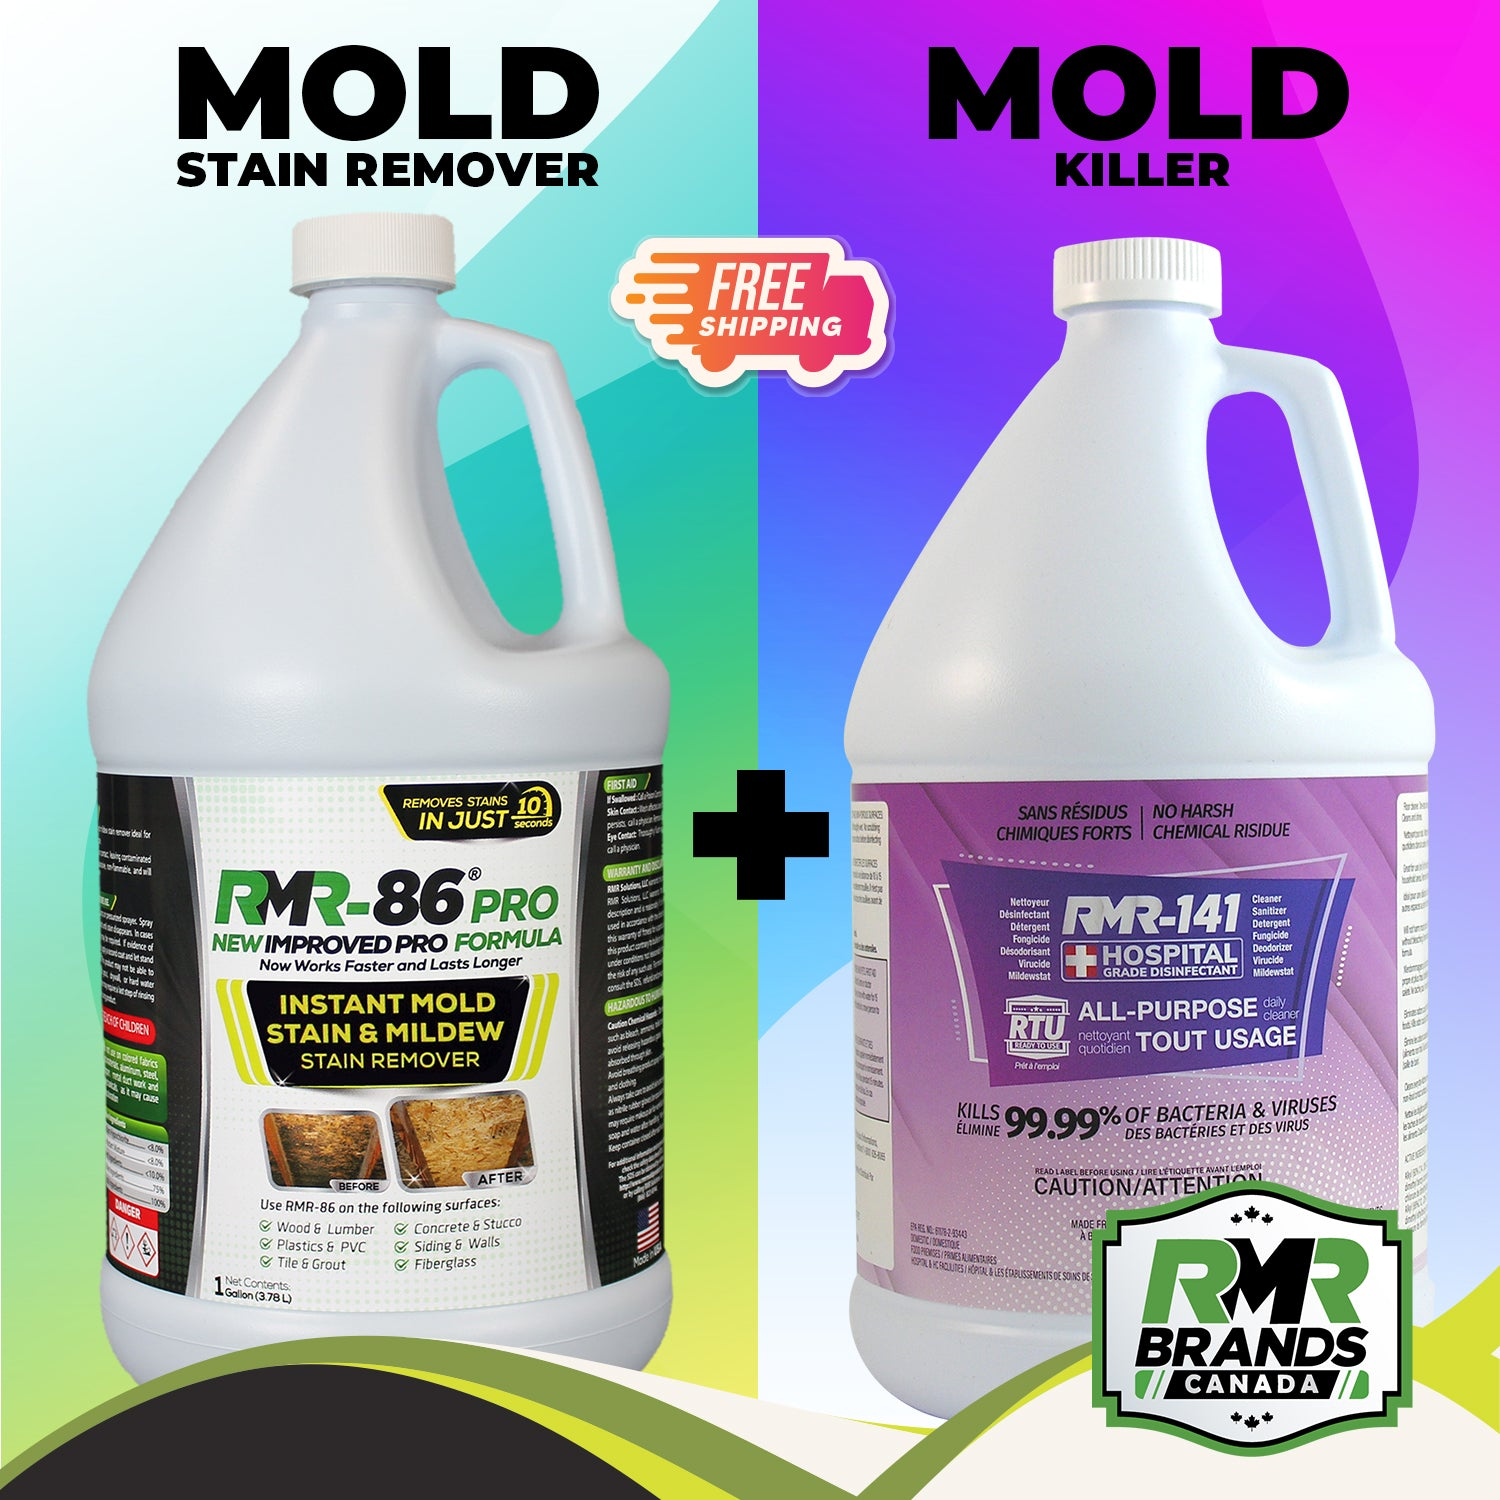 RMR 86 Pro & RMR 141 RTU Combo | Mold Stain Remover and Mold Killer - Easy to use just spray and walk away (1 gallon / each)